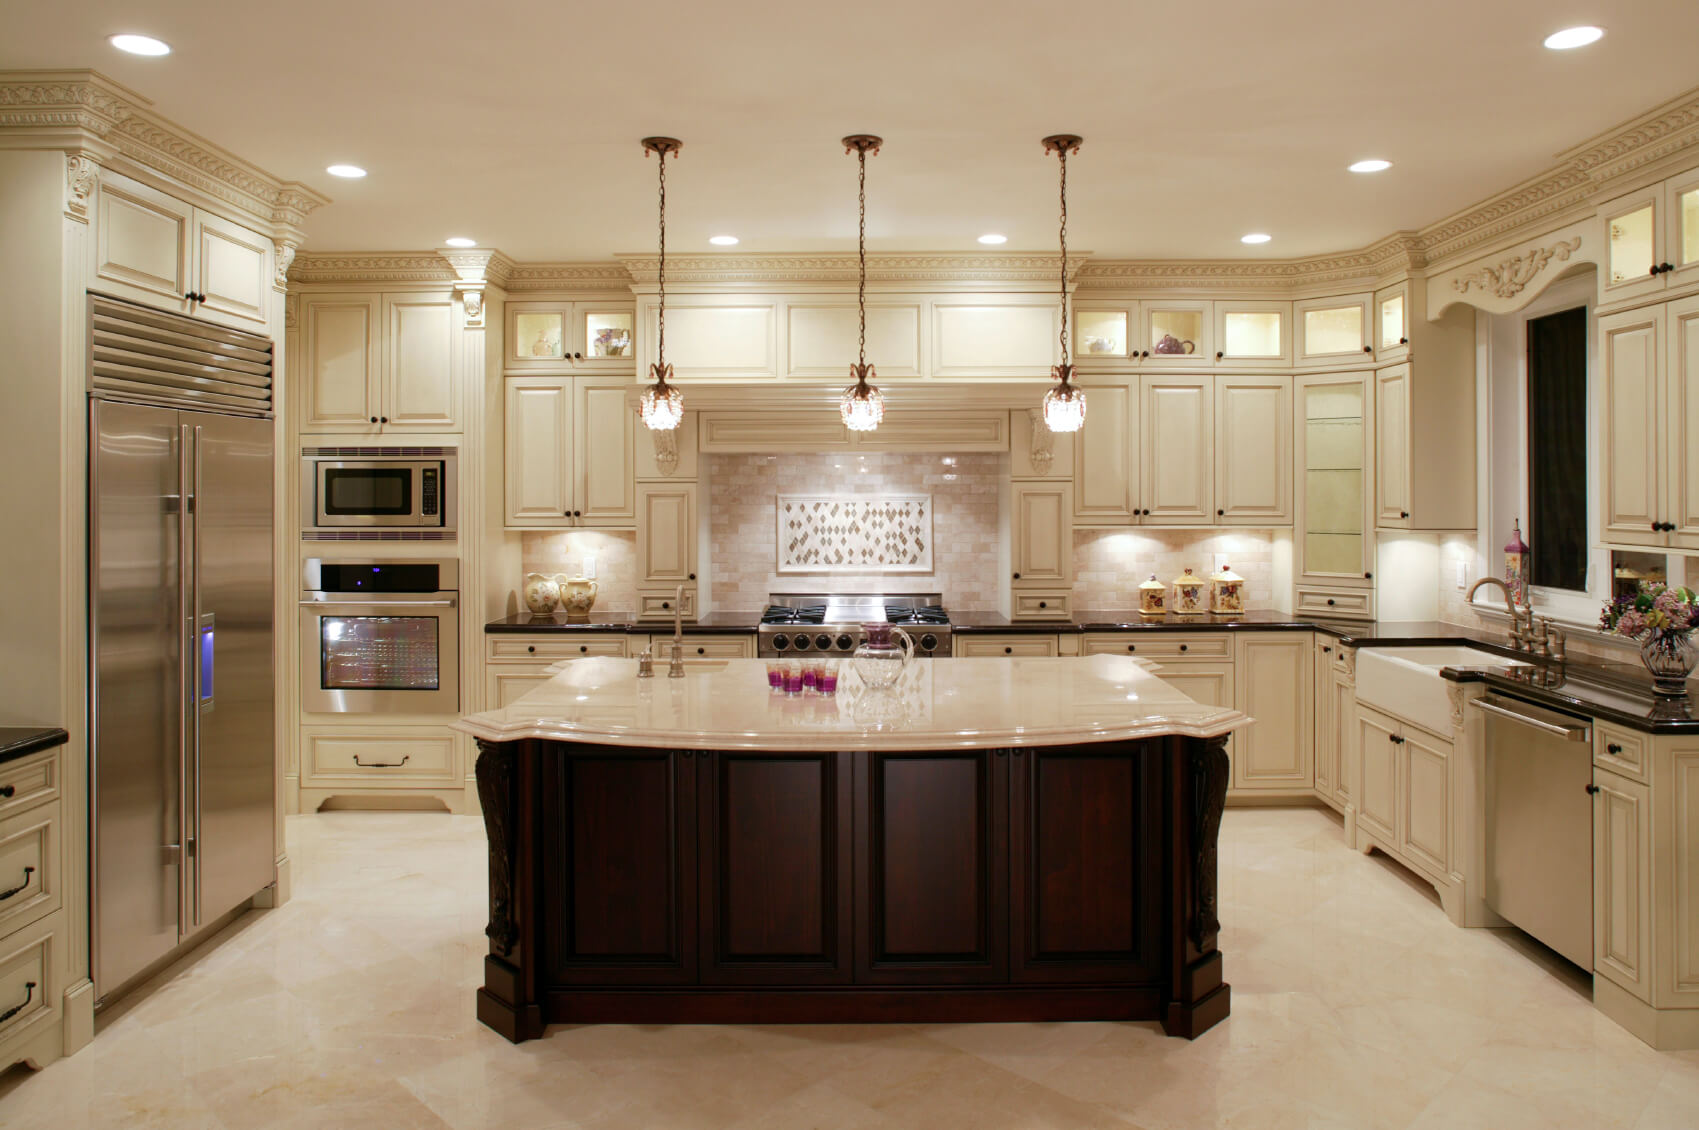 u shaped kitchen designs u shaped kitchen designs This U shaped kitchen centers around a large dark wood island with classic marble countertop